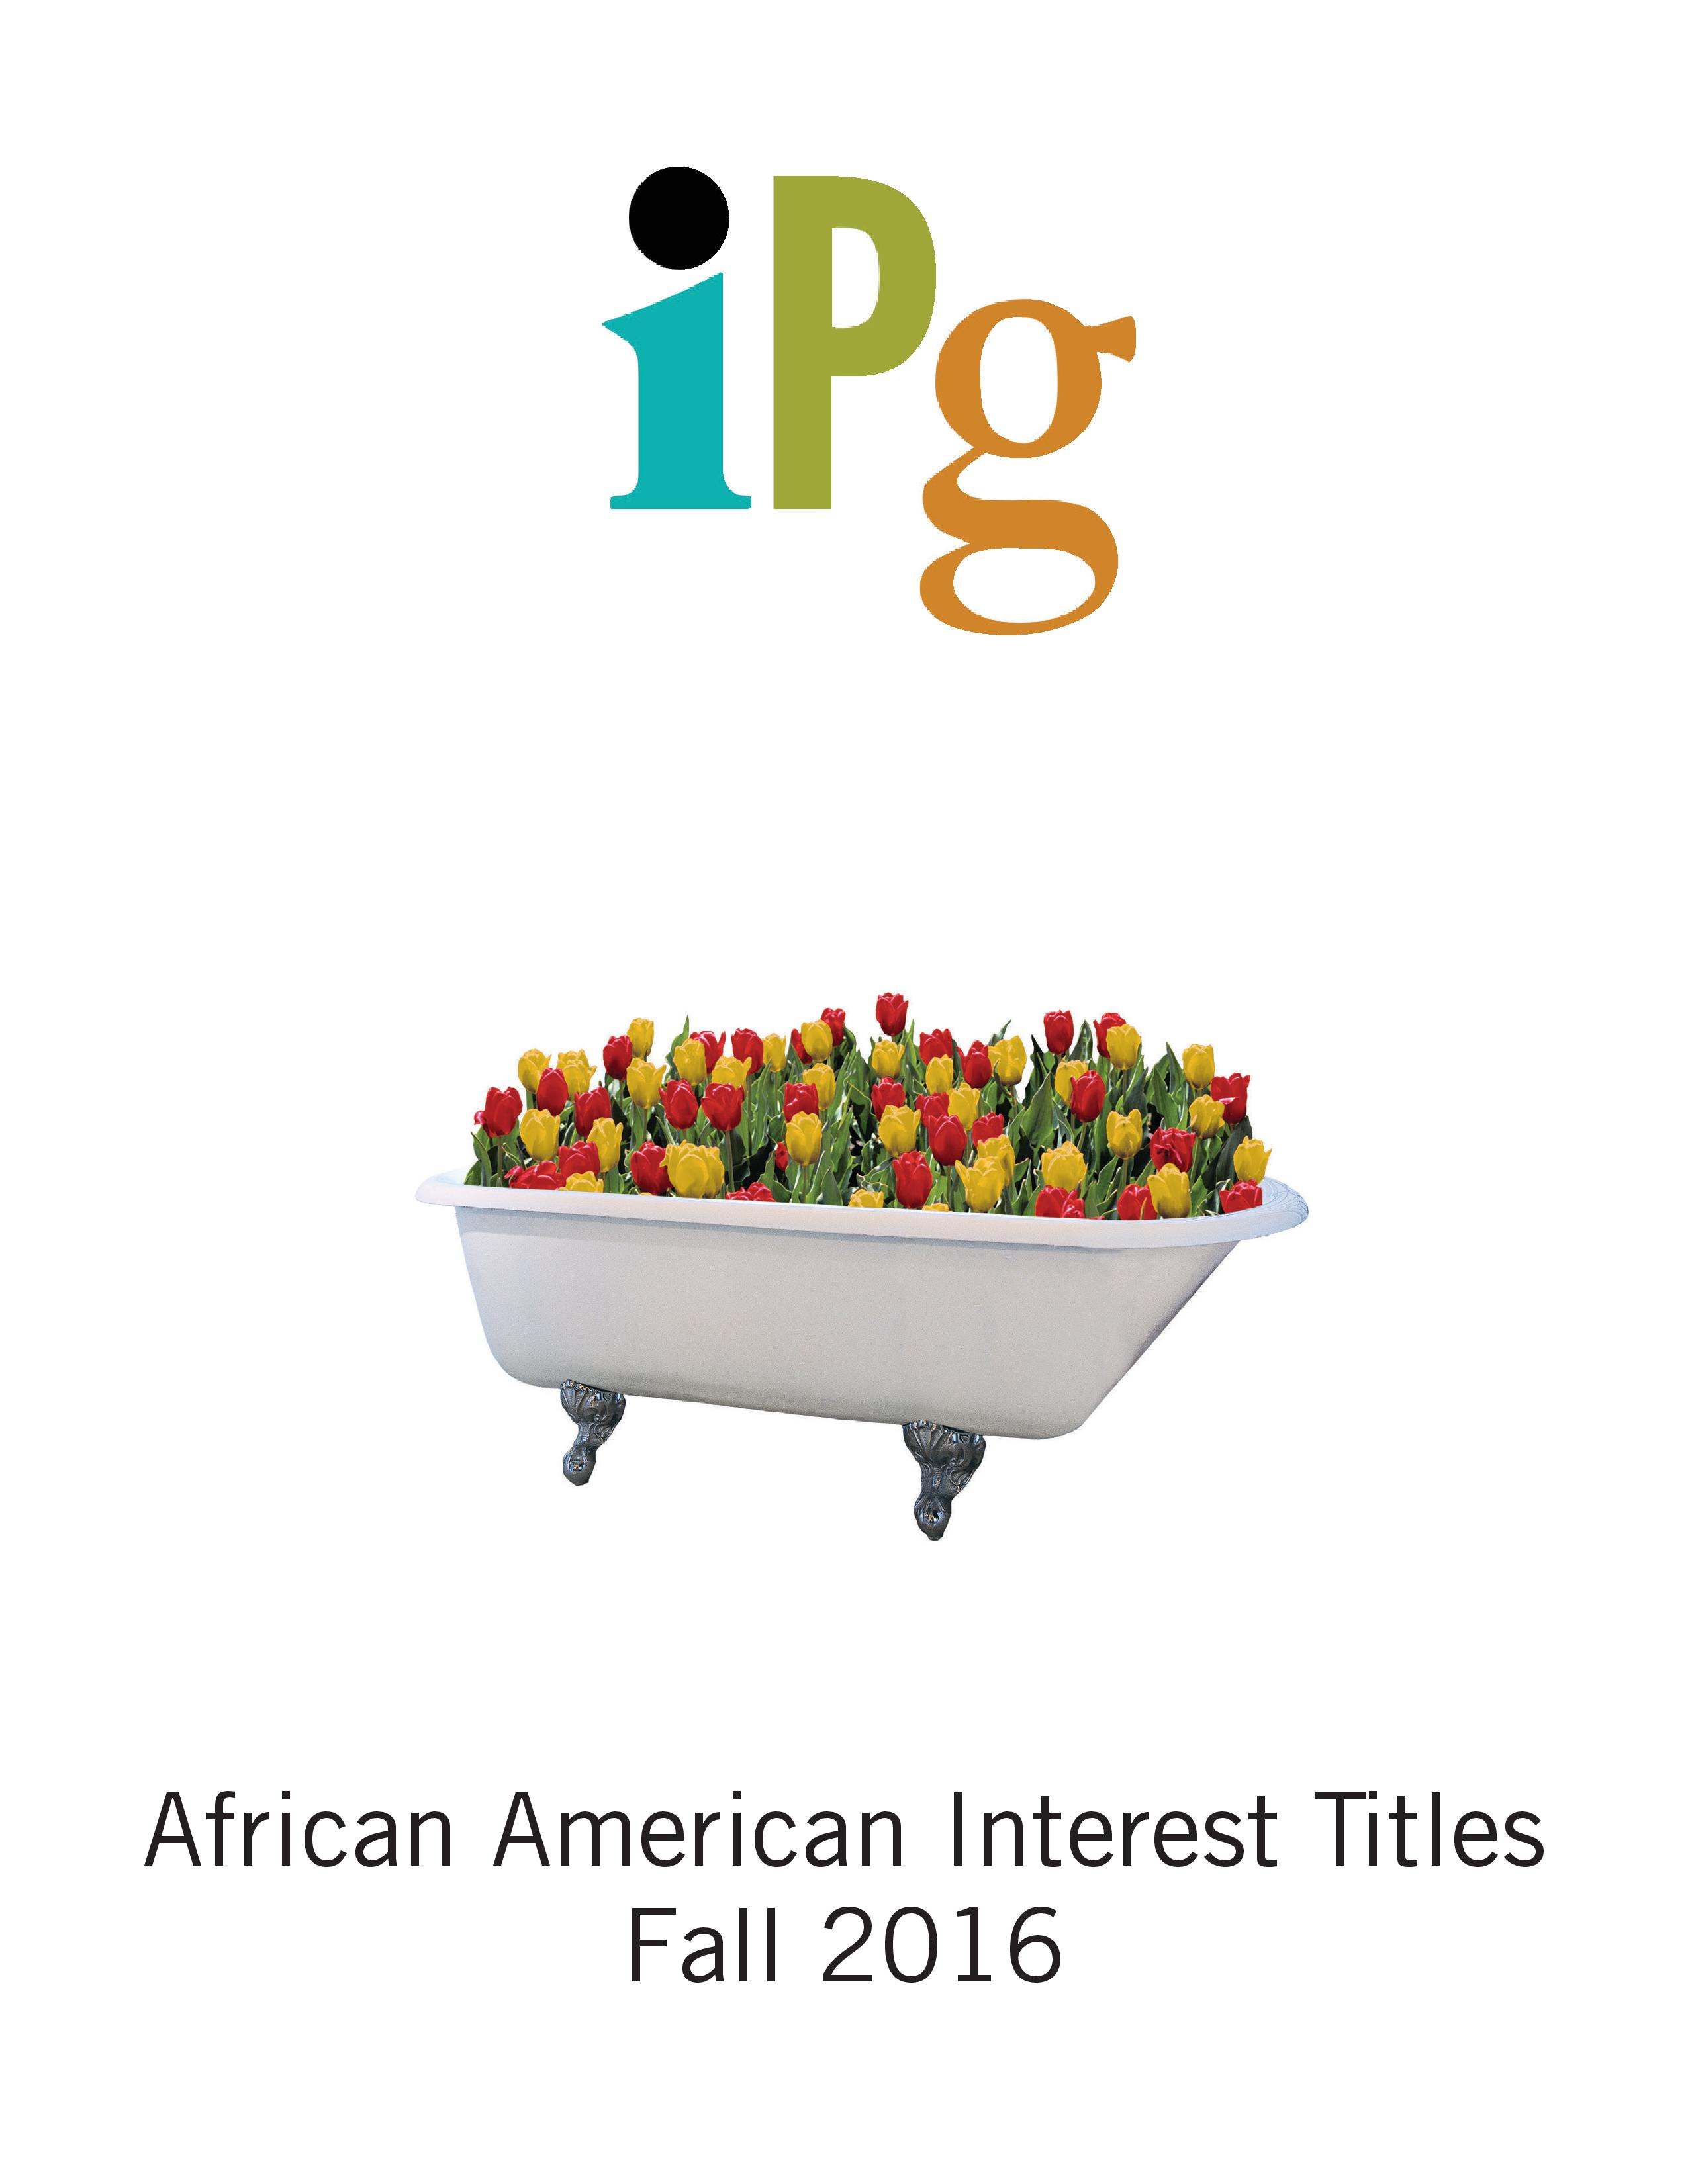 African American Interest Titles